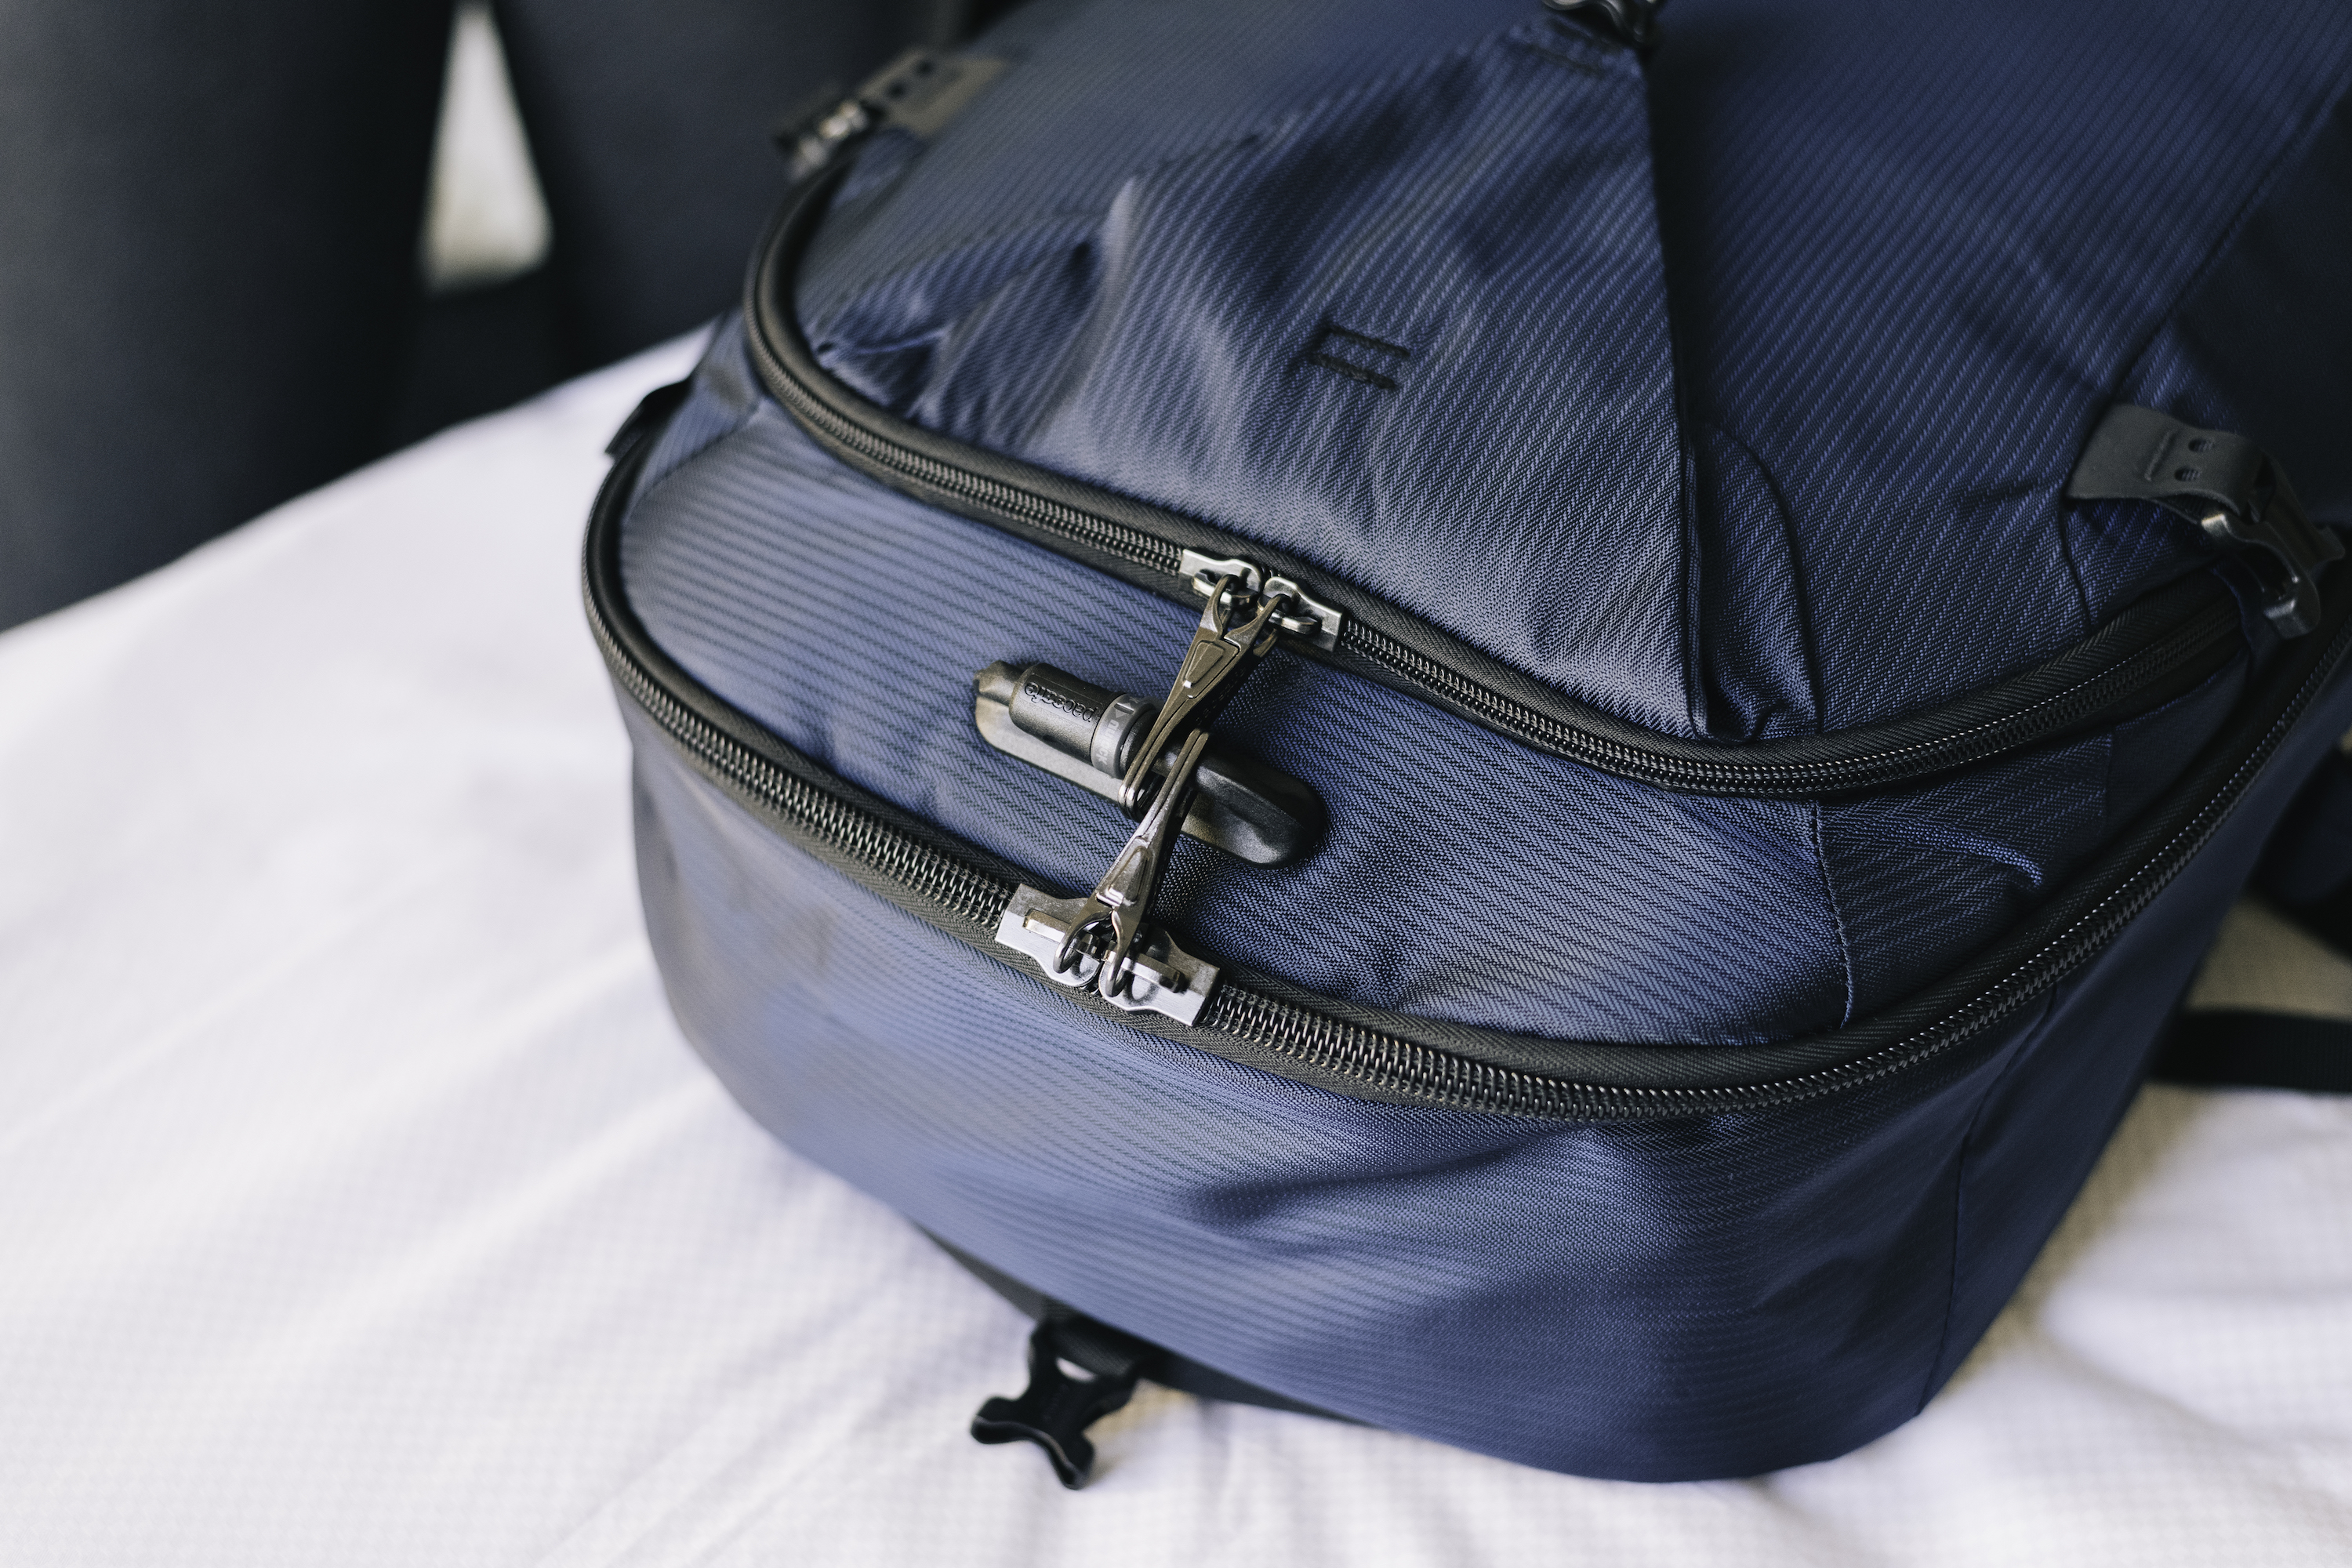 The Best Way To Lock Your Bag – with industrial designer Luke Ritchie